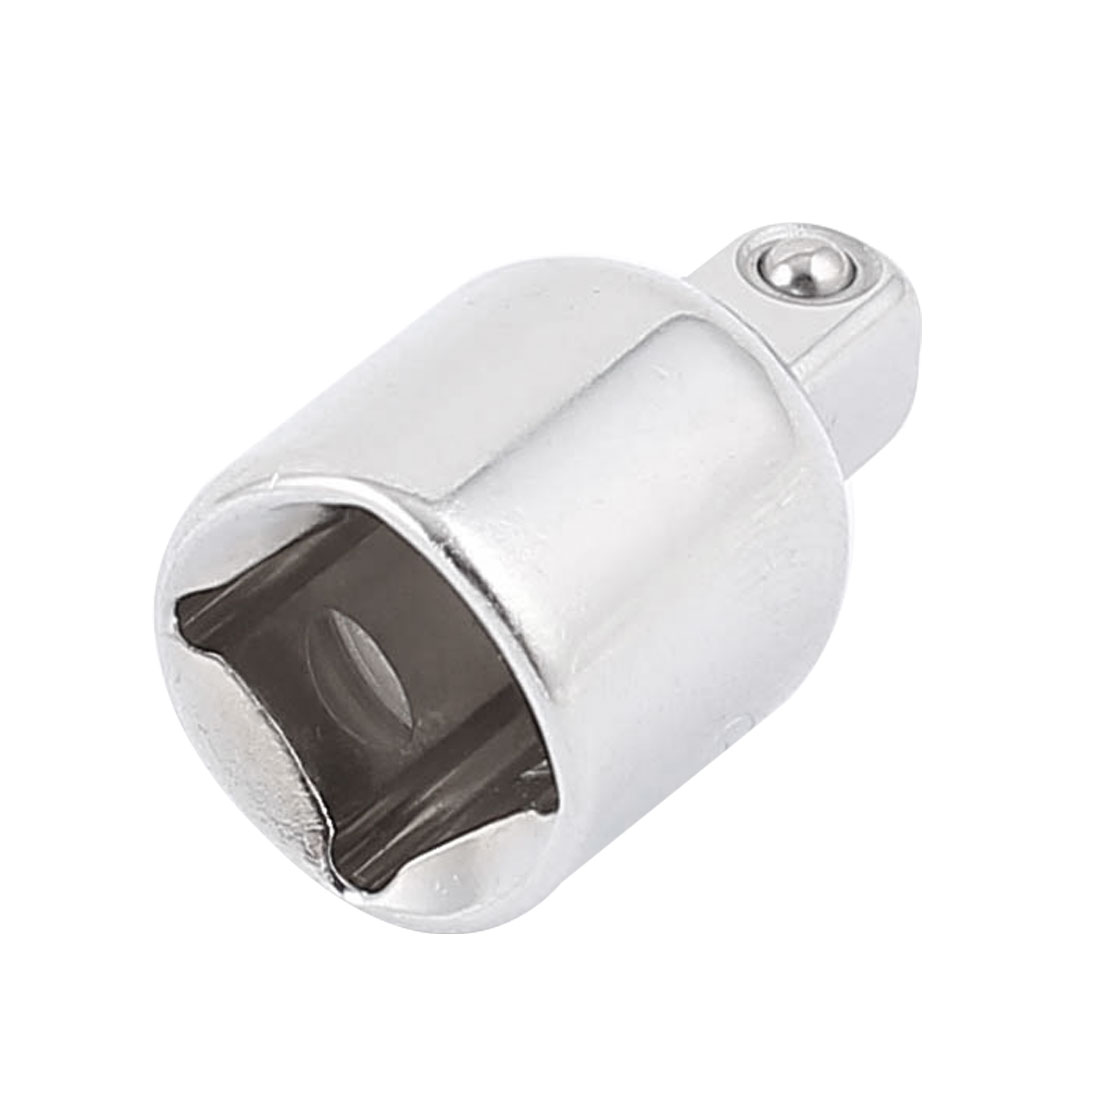 "3/8"" to 1/4"" Drive M/F Ratchet Air Impact Socket Reducer Adapter Converter"